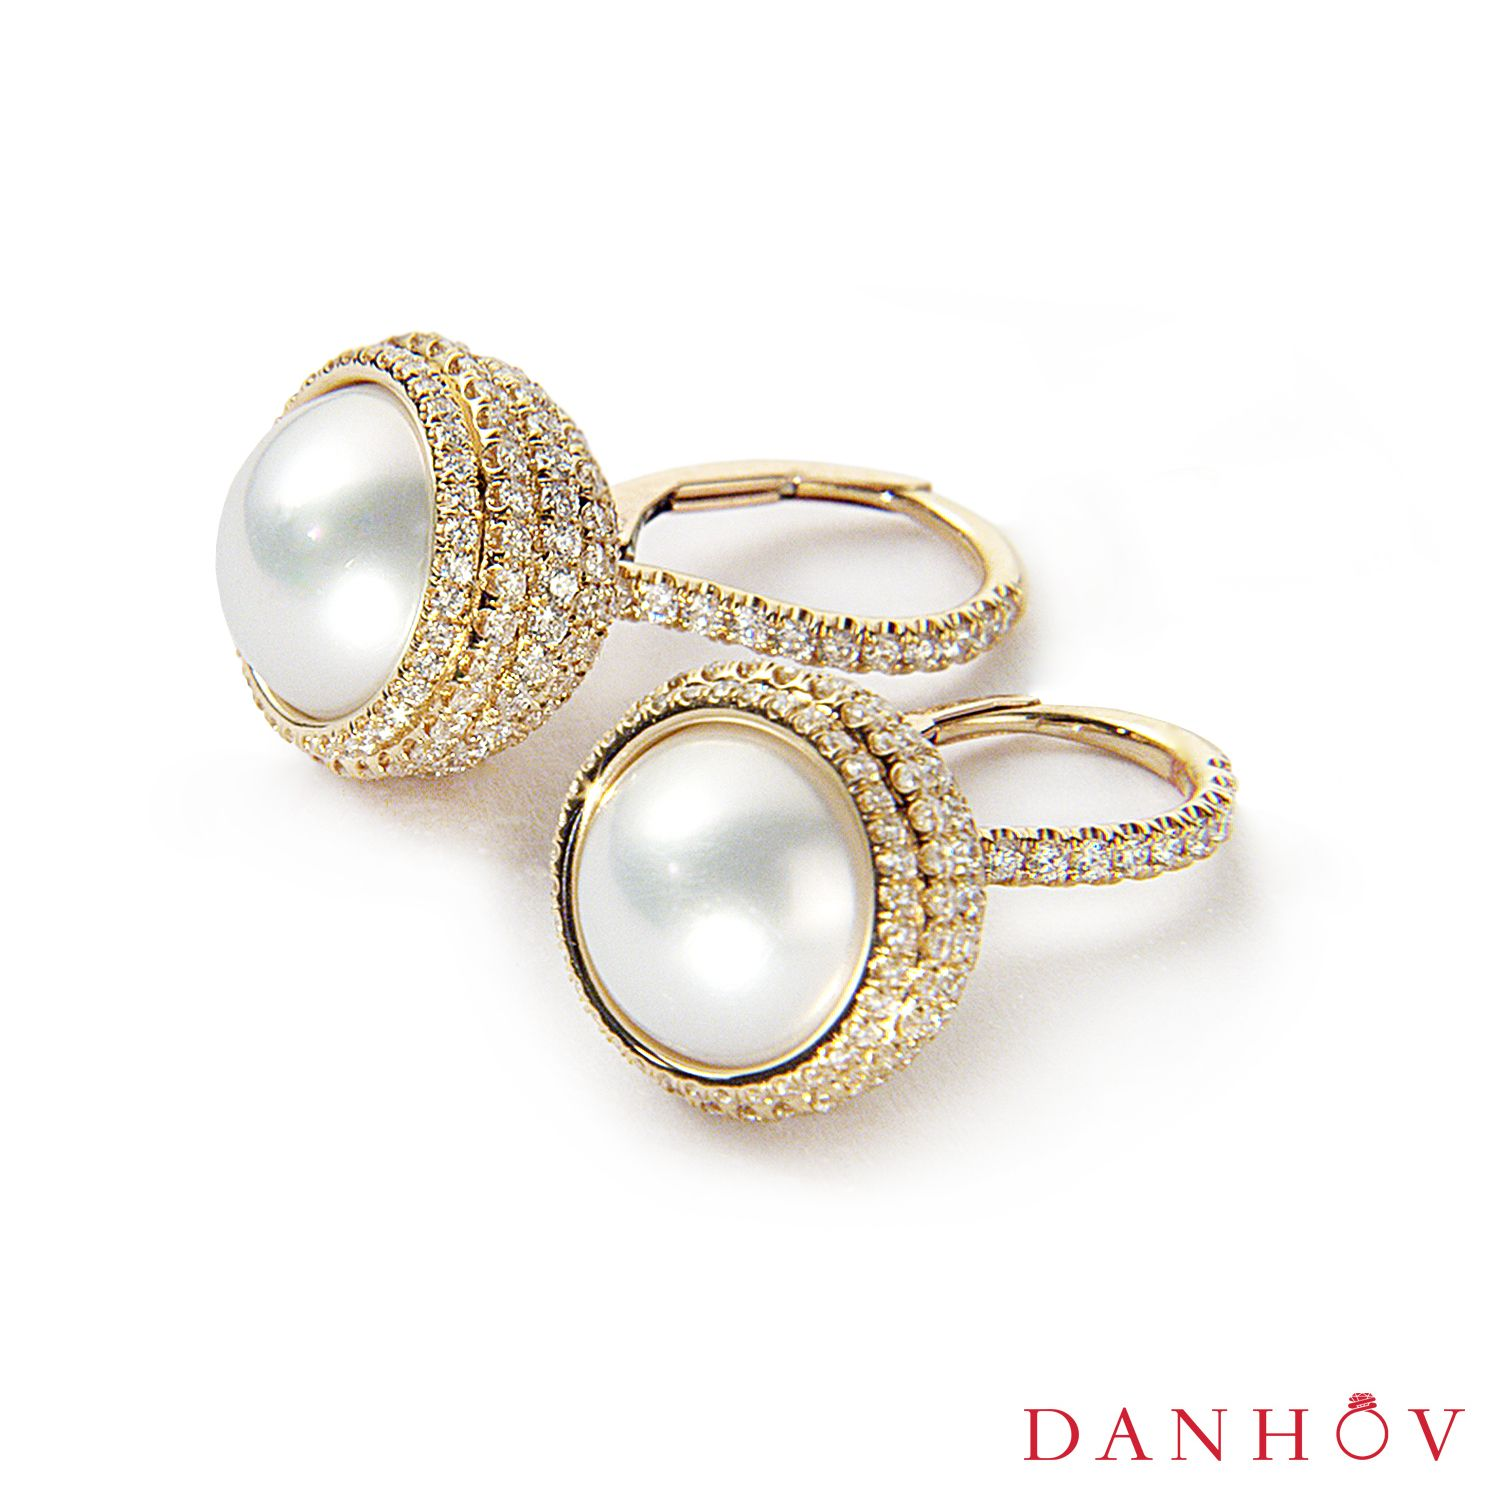 Elegant Set Of Fine Jewelry Pearl Ring And Earrings By Danhov Jewelry Designer Www Danho Designer Engagement Rings Luxury Jewelry Brands Unique Wedding Bands